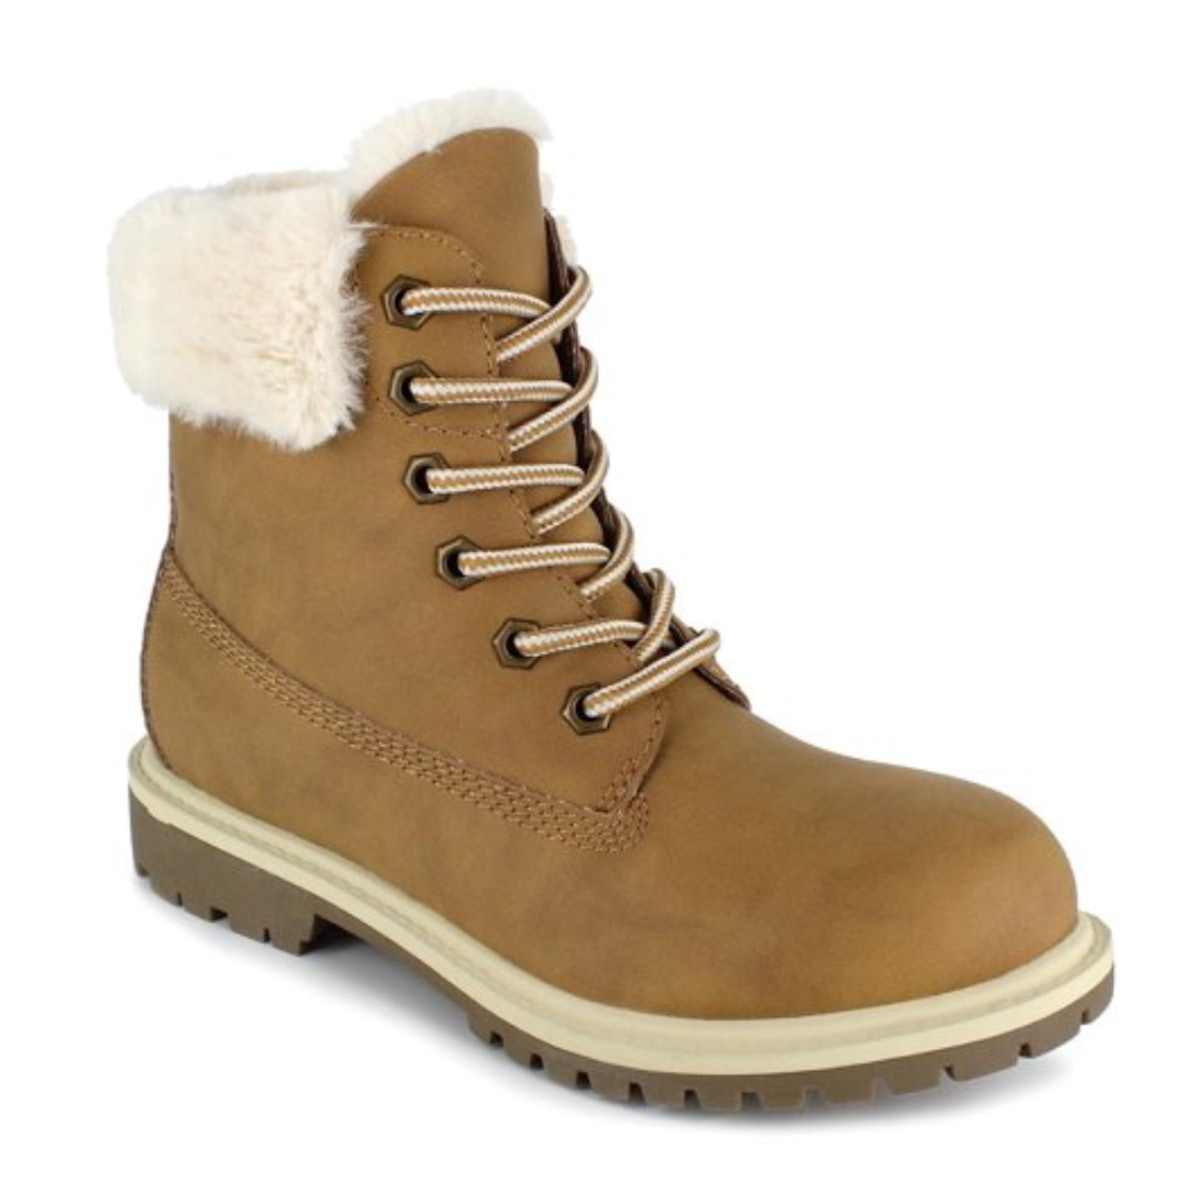 PORTLAND by Portland Boot Company Faux Fur Trim Lace Up Boot